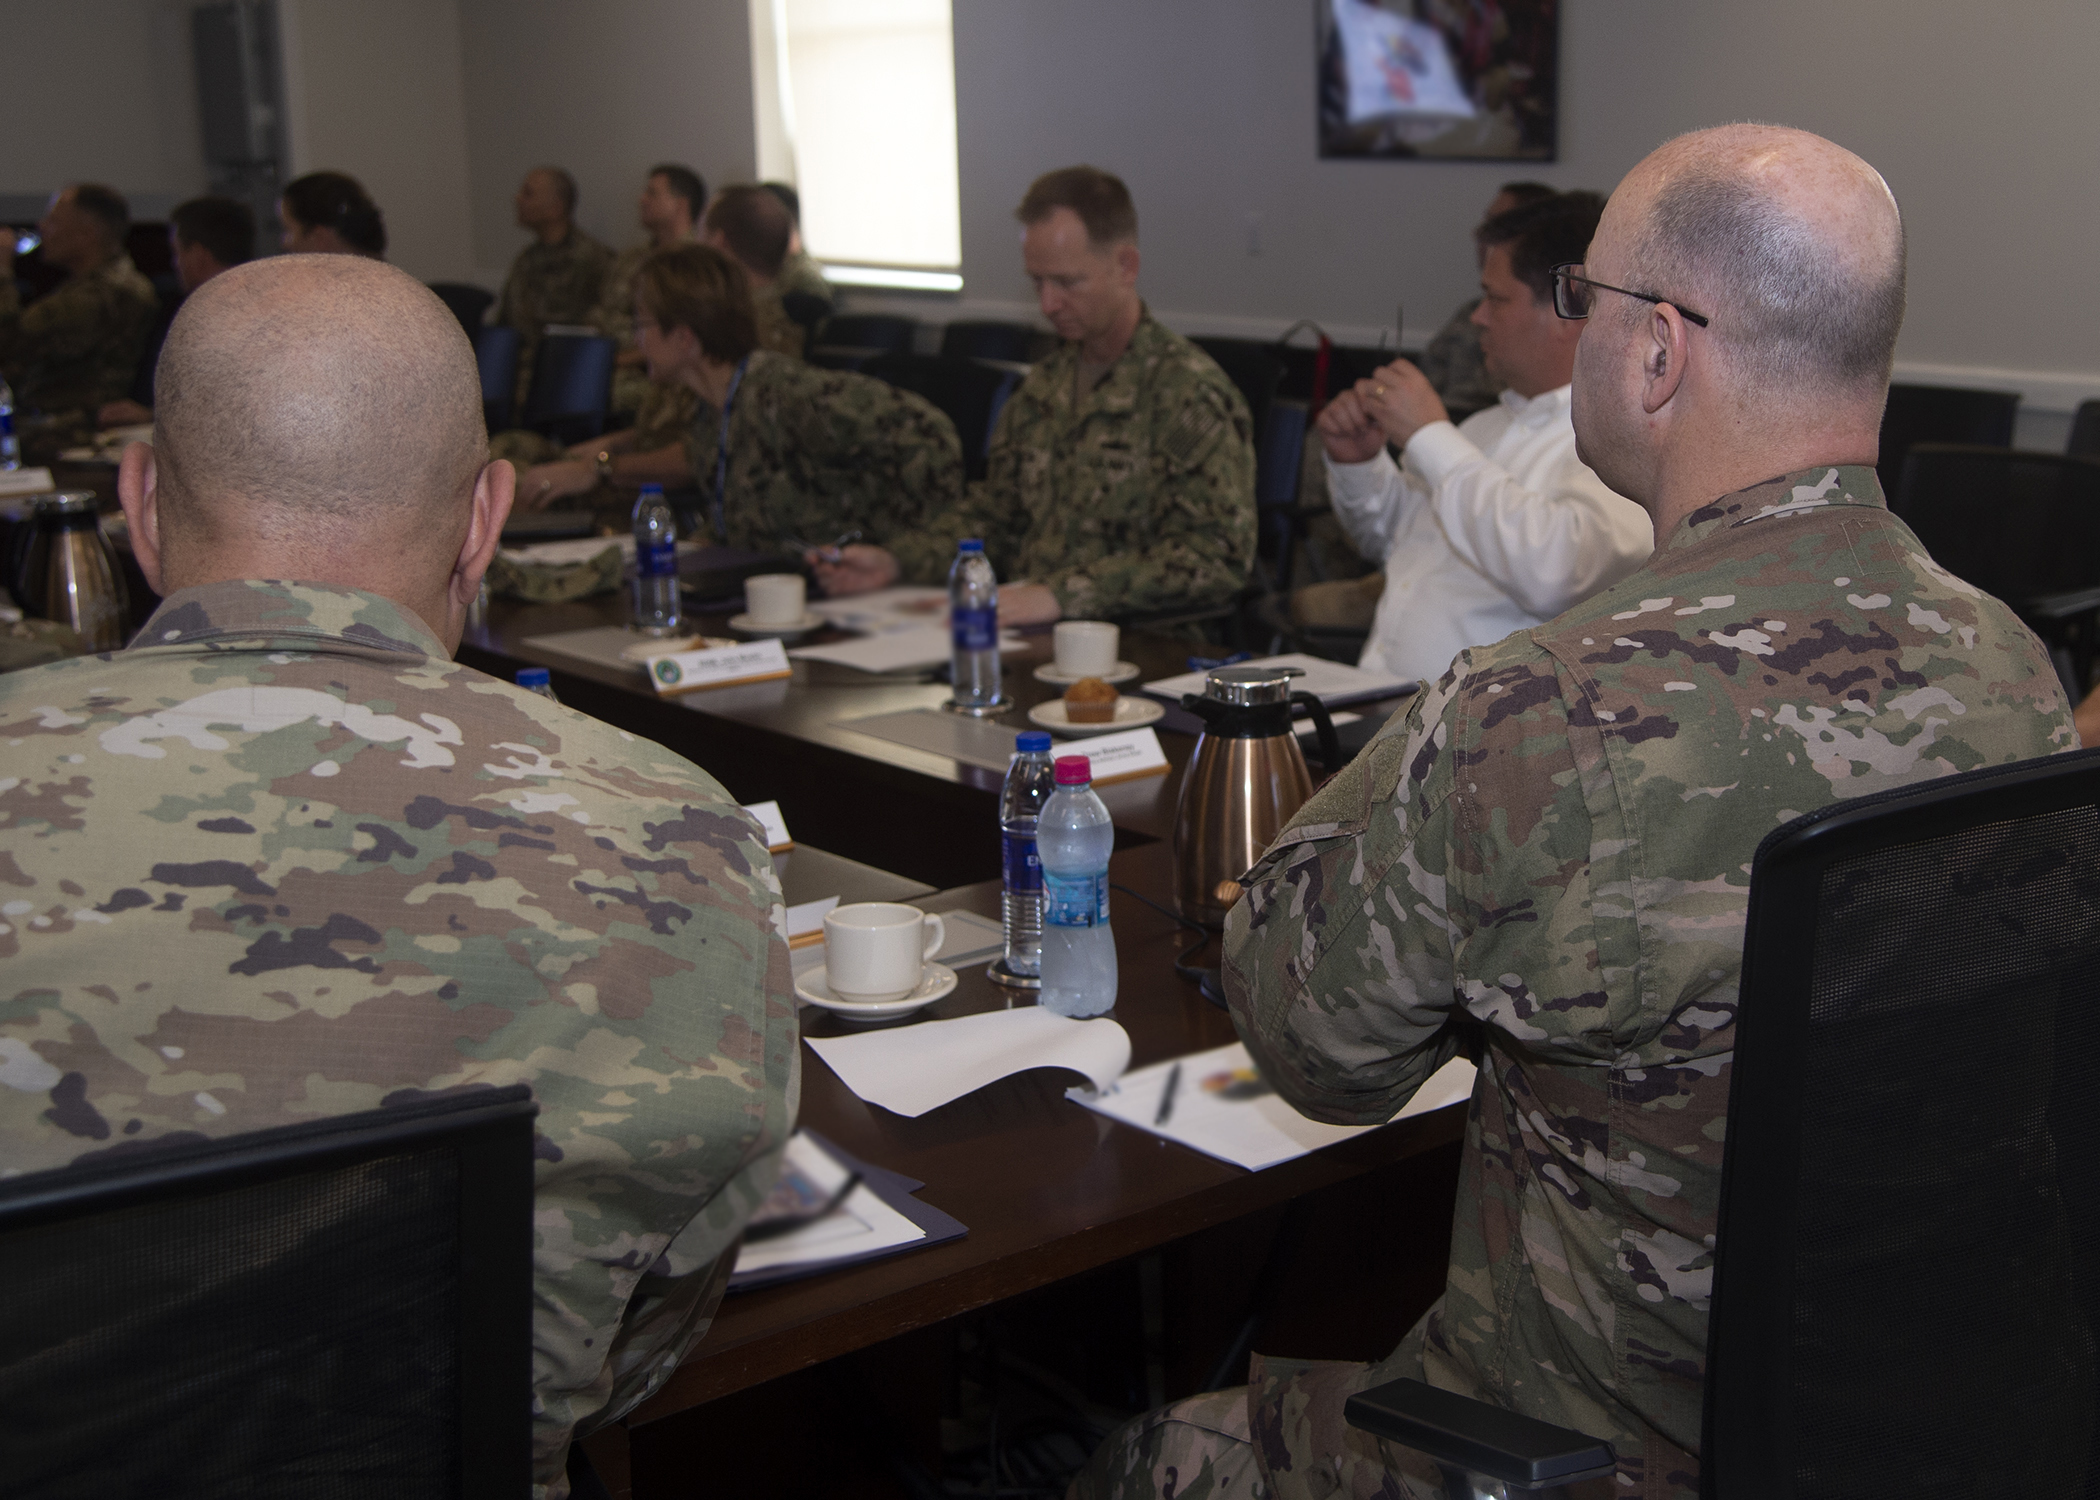 U.S. Air Force Brig. Gen. James R. Kriesel, deputy commanding general of Combined Joint Task Force-Horn of Africa, watches a slide show during a classroom session as part of the Capstone Military Leadership Program at Camp Lemonnier, Djibouti, Feb. 13, 2019. Capstone is a joint-service professional military education course for newly-promoted brigadier generals and rear admirals serving in the U.S. military. (U.S. Navy photo by Mass Communication Specialist 1st Class Nick Scott)